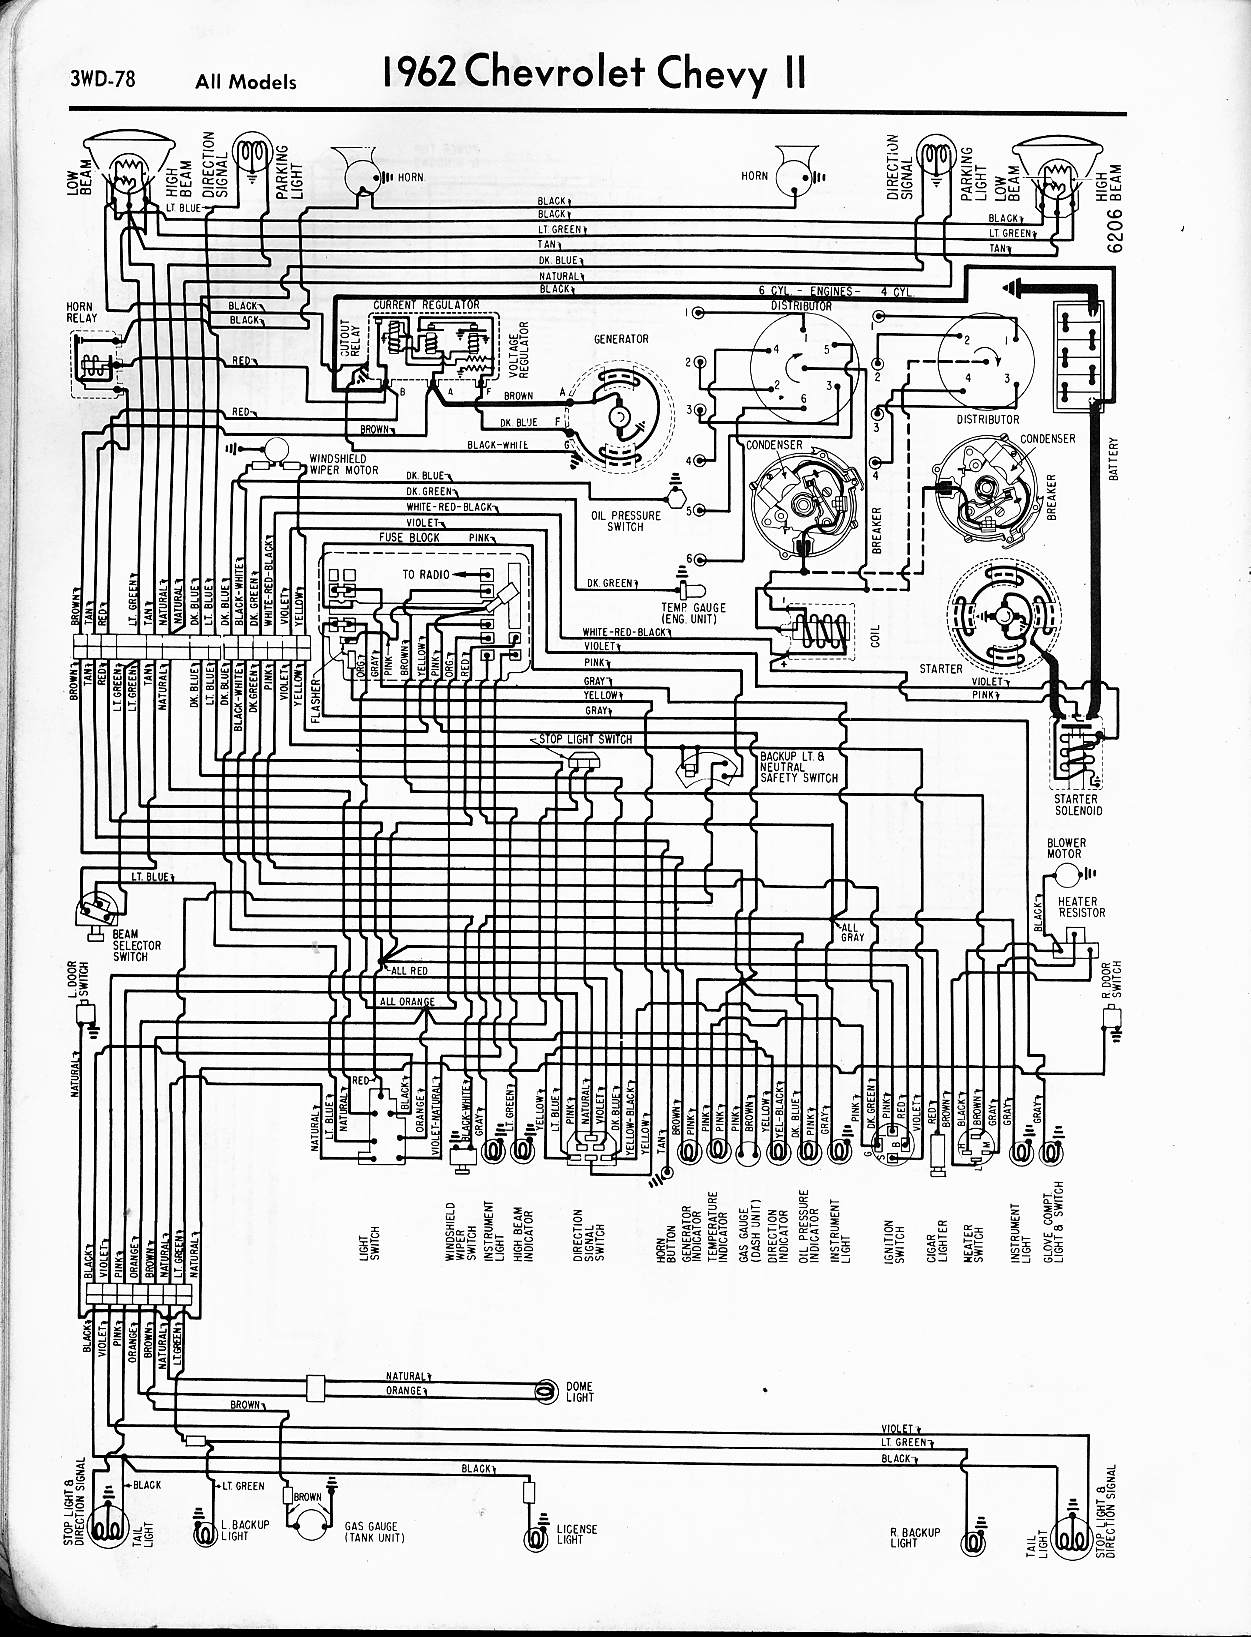 MWireChev62_3WD 078 57 65 chevy wiring diagrams 1963 Nova Wiring Diagram at bakdesigns.co